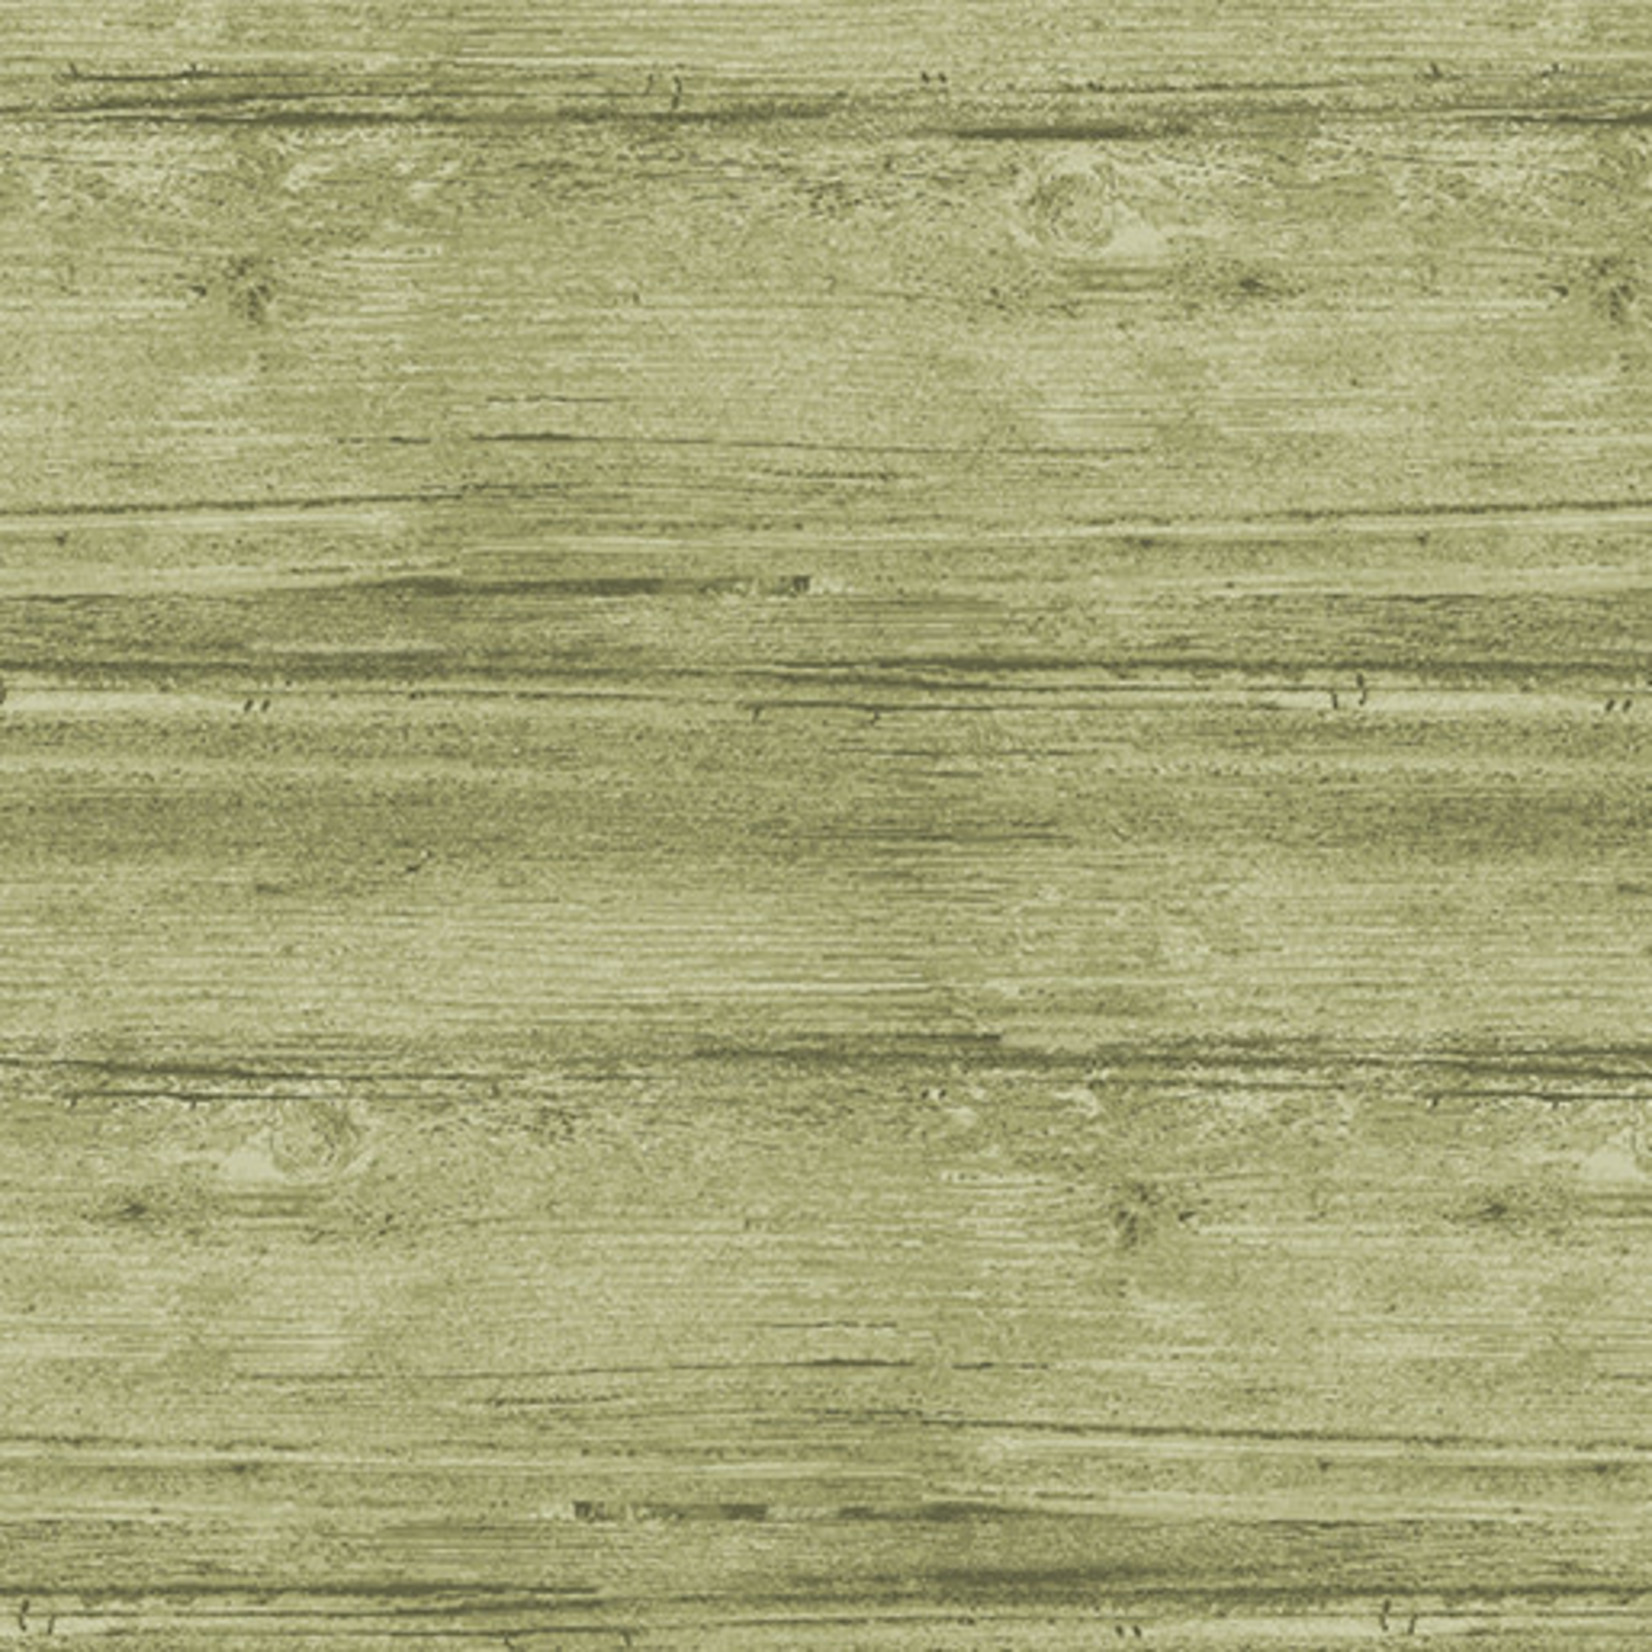 Benartex Washed Wood 108 wide Quilt Back, Sea Grass $0.32 per cm or $32/m